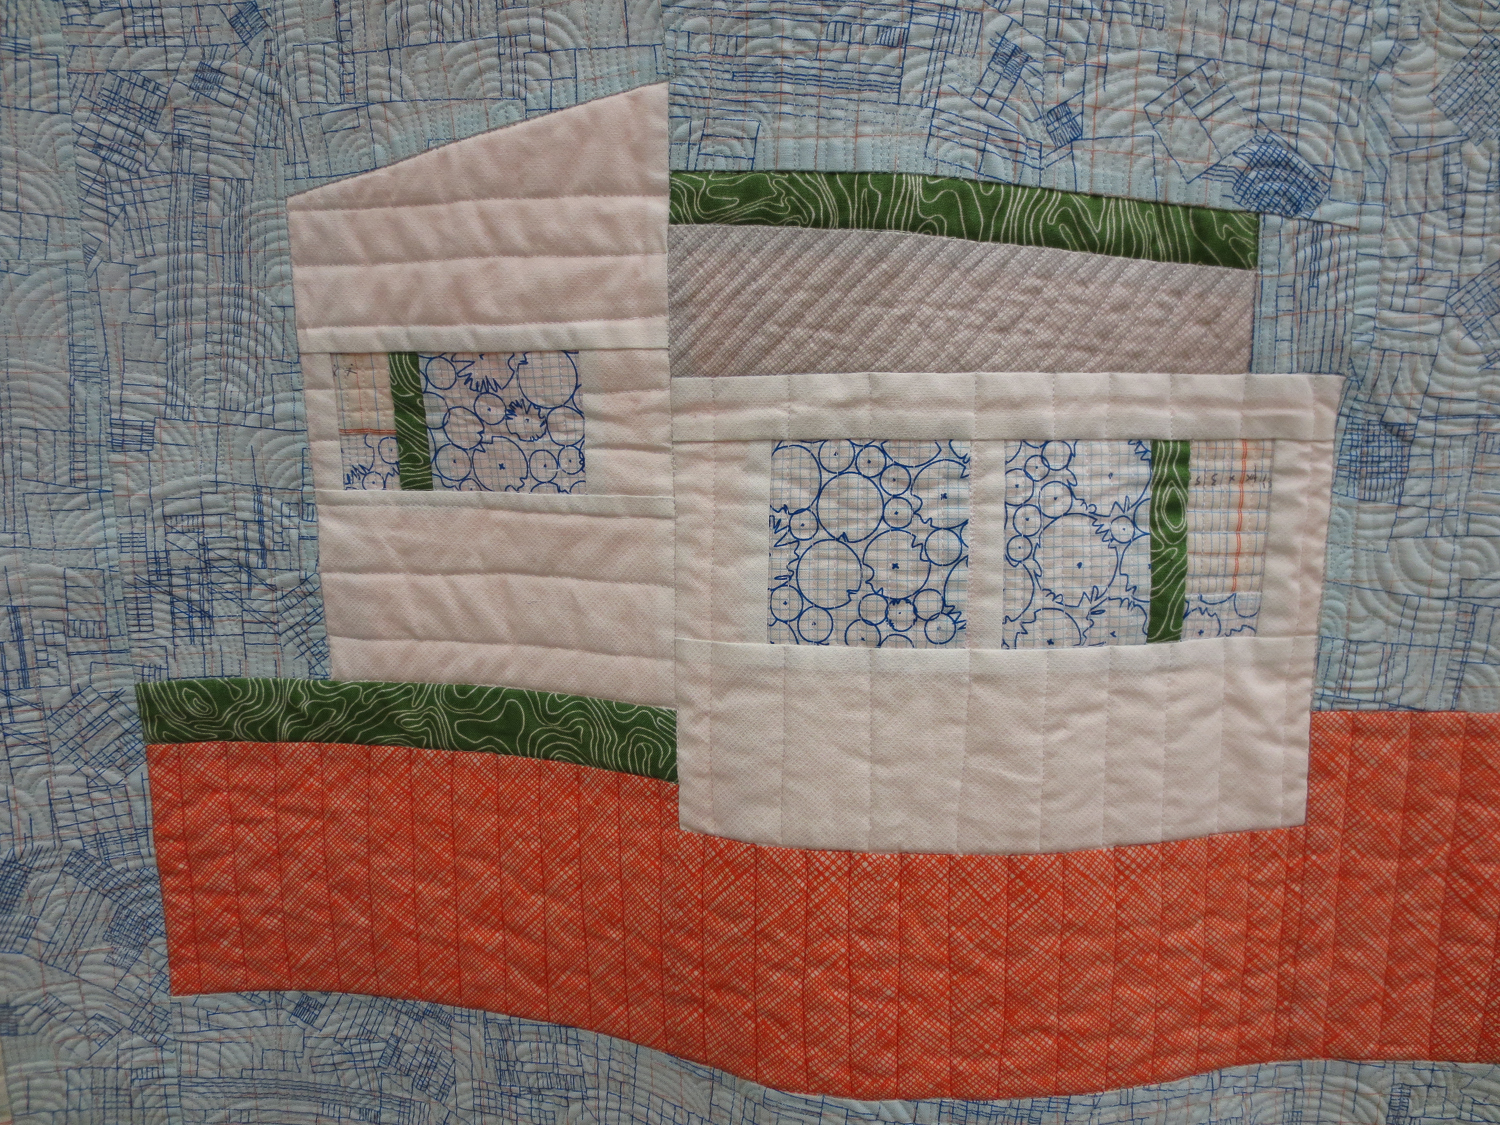 Splitlevel Carolyn Friedlander The Local quilt